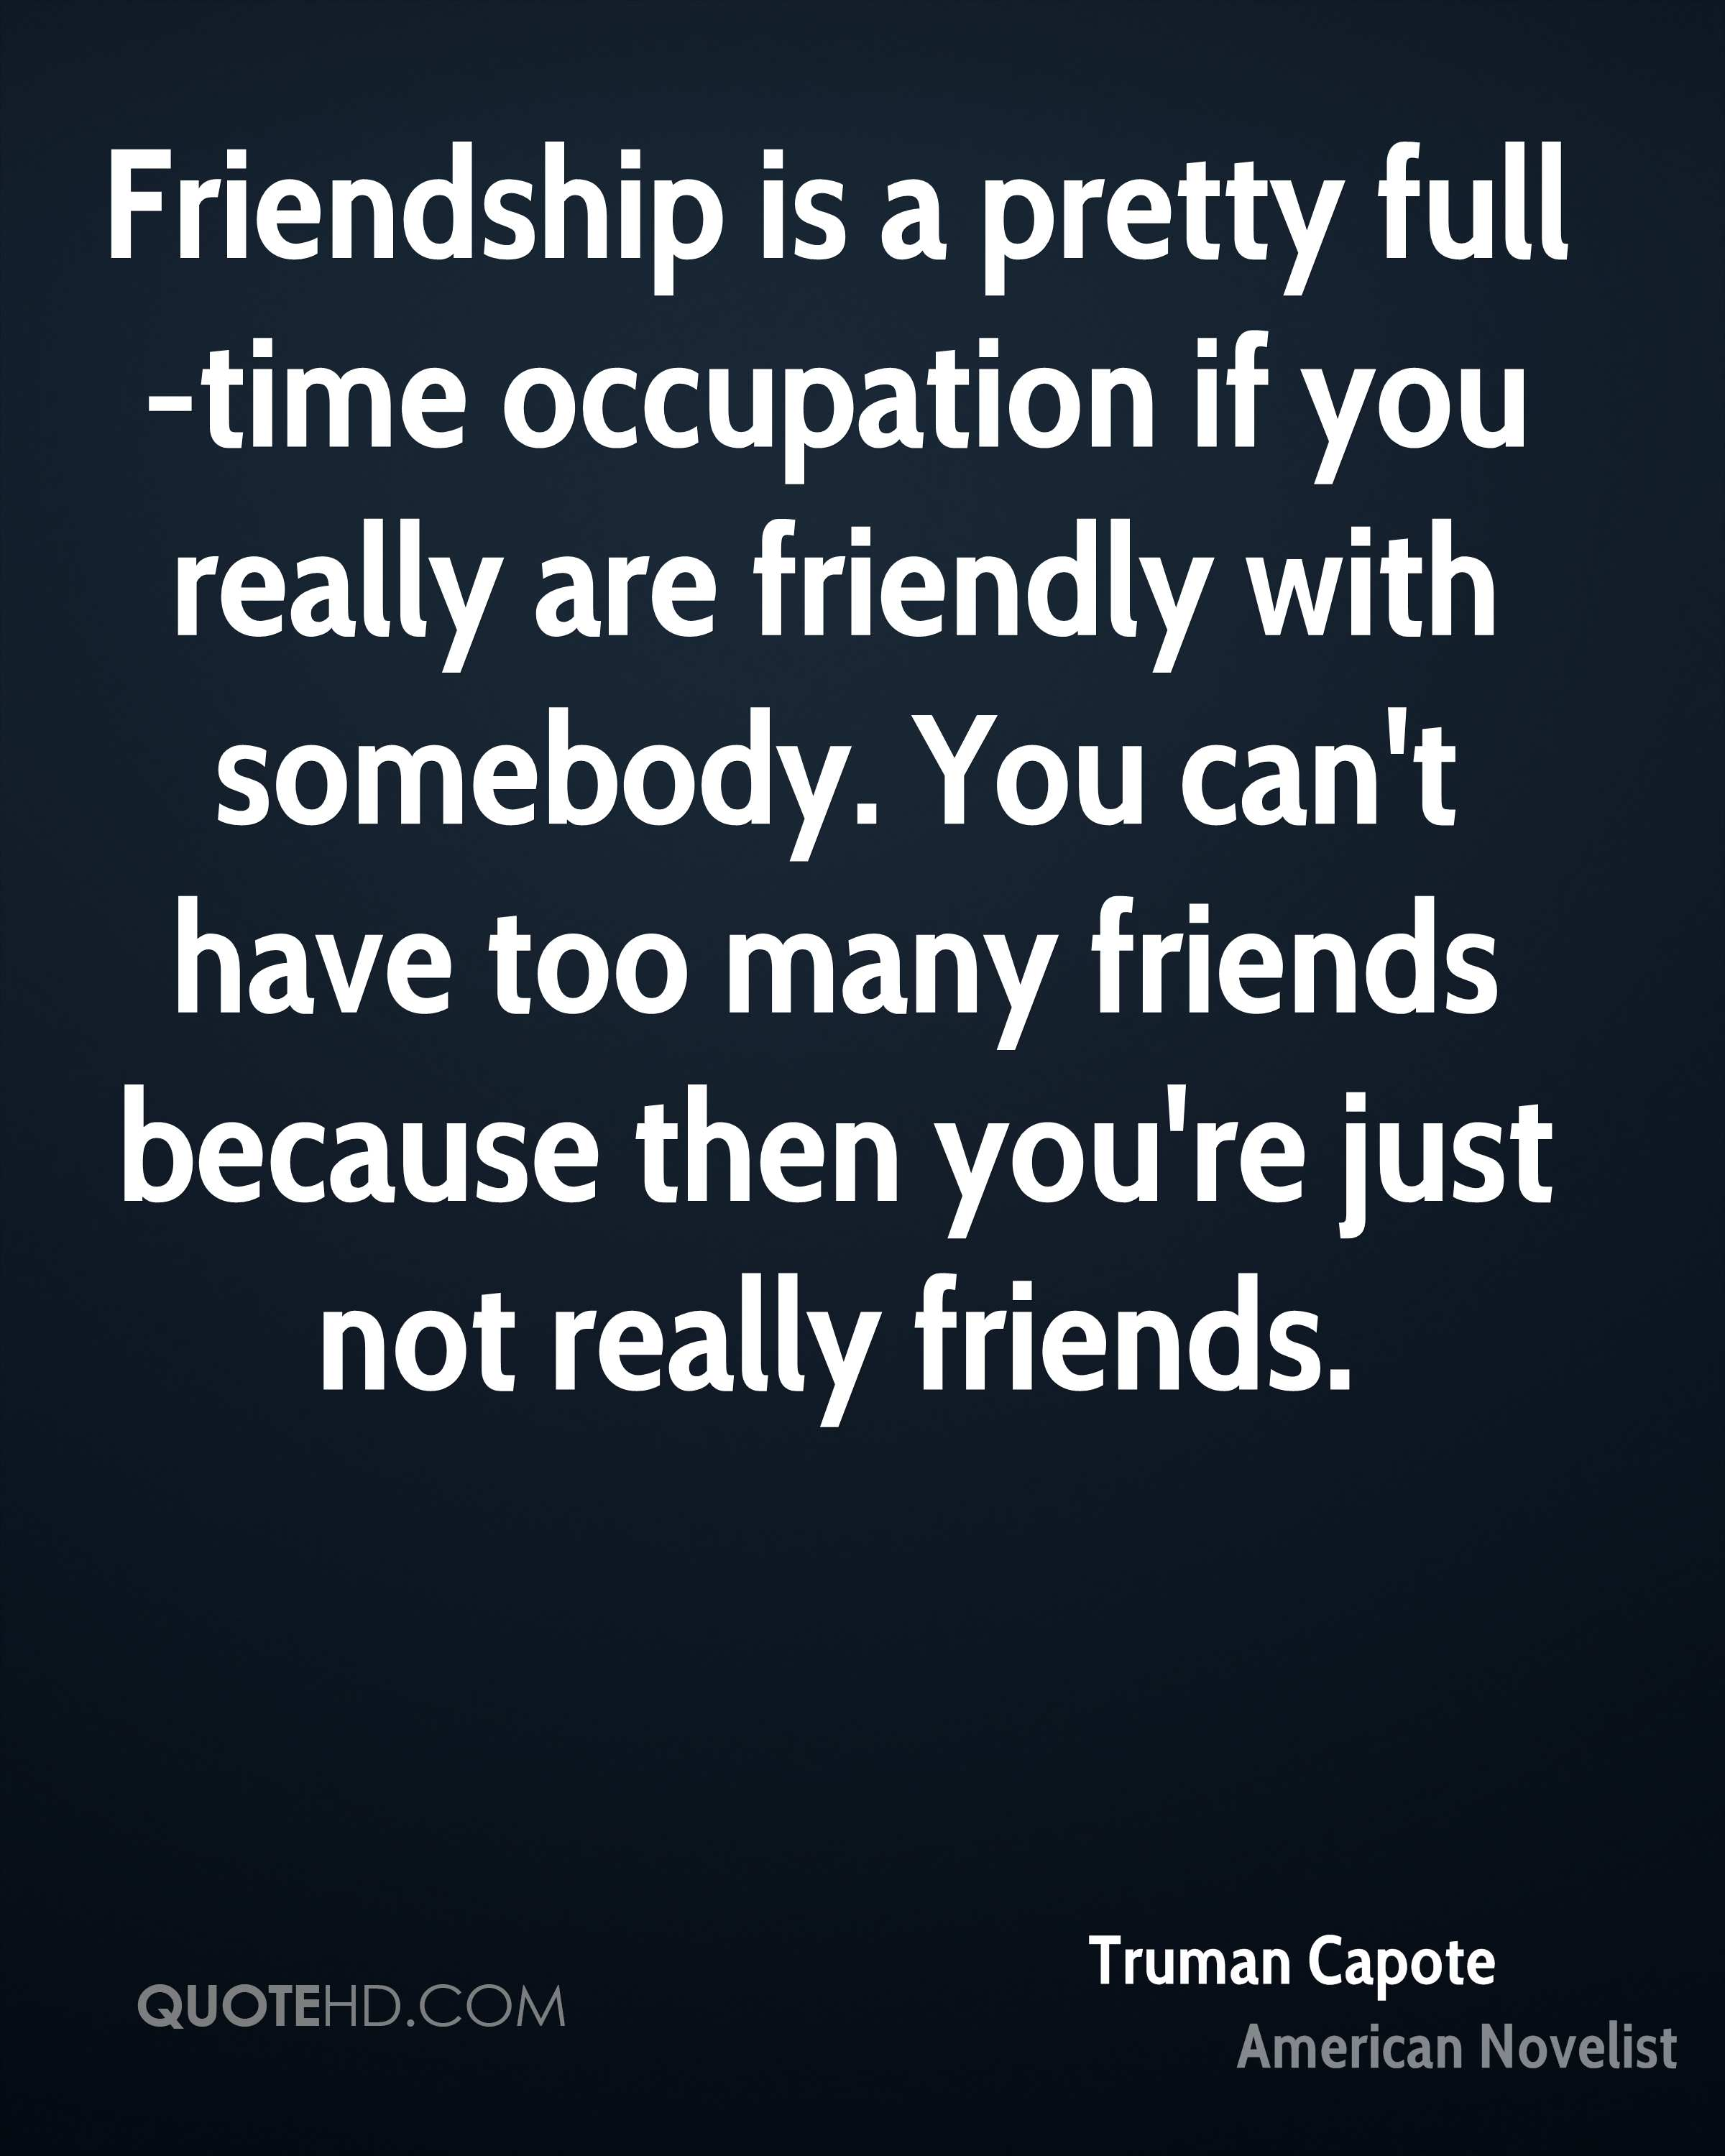 Friendship is a pretty full-time occupation if you really are friendly with somebody. You can't have too many friends because then you're just not really friends.